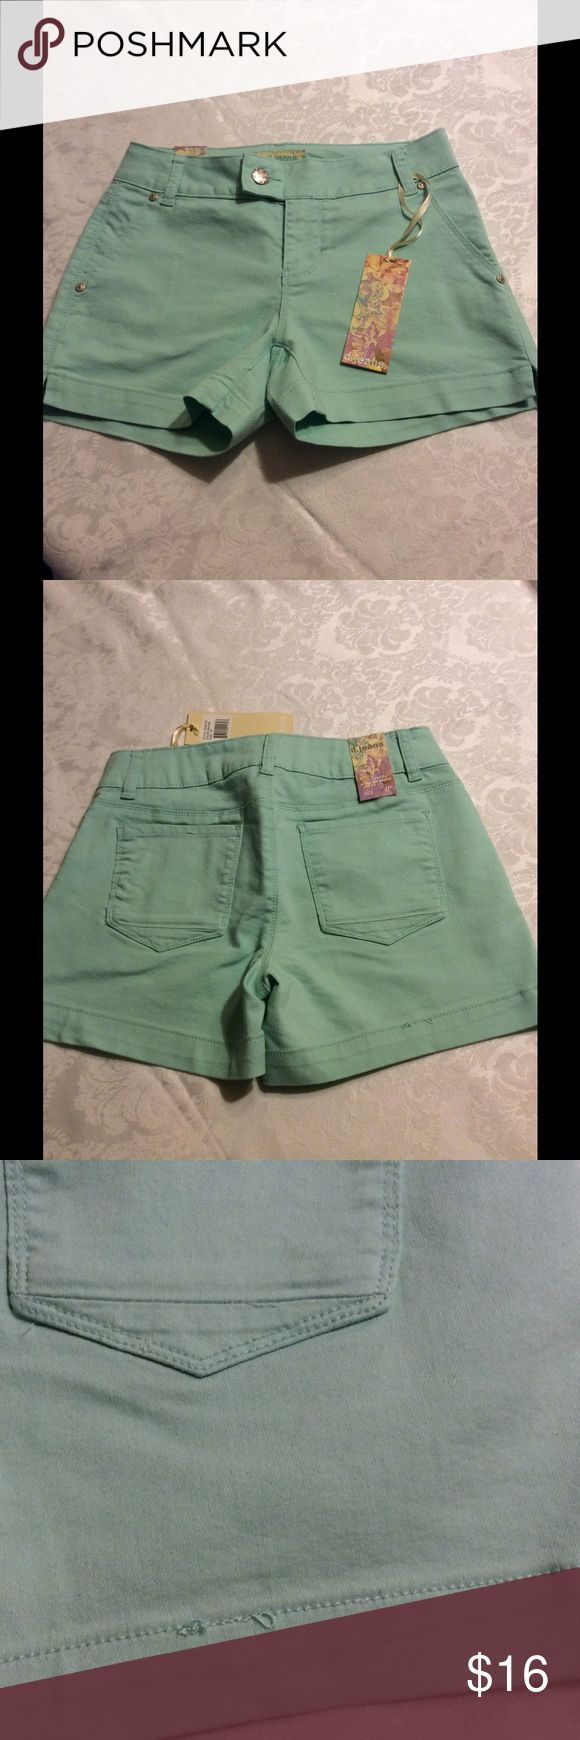 d. jeans - Mint Green Shorts d. jeans brand mint green shorts, super cute for summer ☀️. Color is sea foam, size 4 Petite.   70% cotton, 28% polyester, 2% spandex for stretch.  Machine wash and dry.  Made in China. d. jeans Shorts